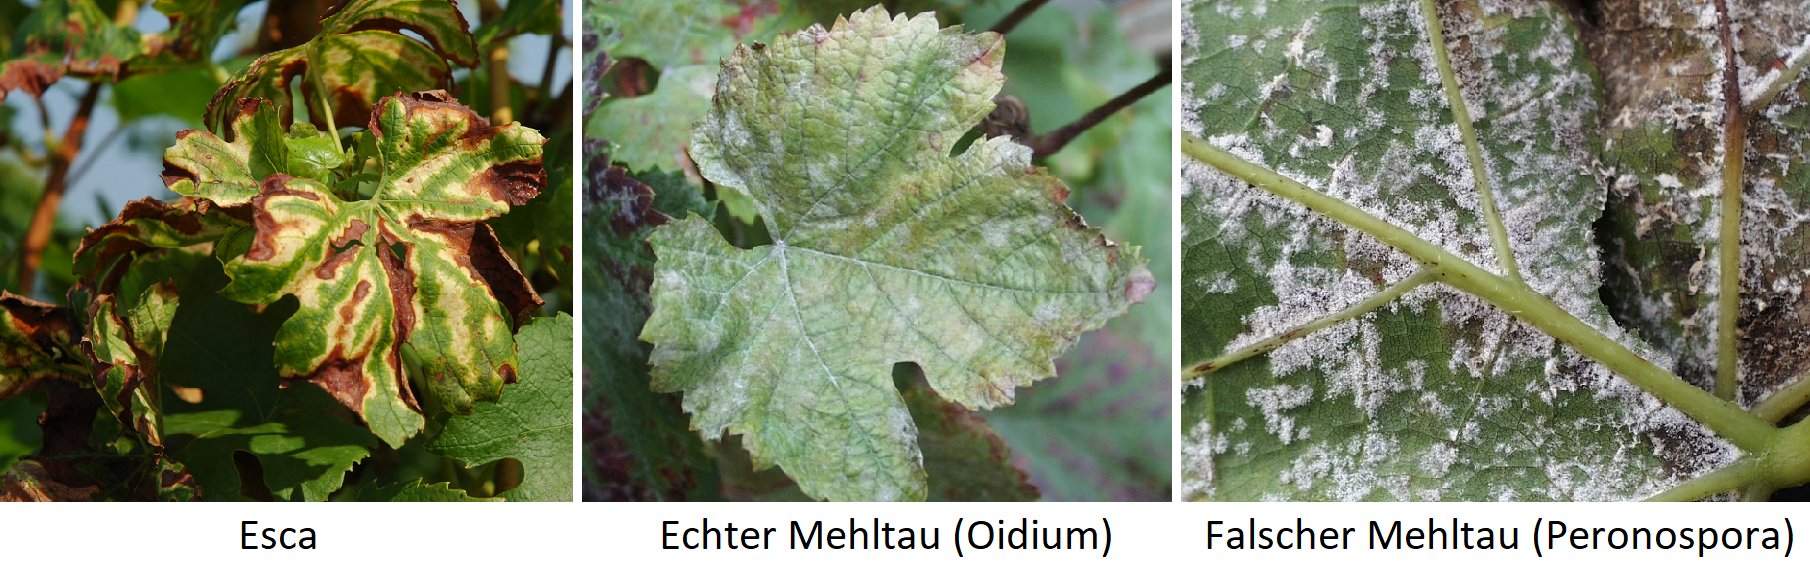 Vineyard enemies - mushrooms: Esca, powdery mildew, downy mildew